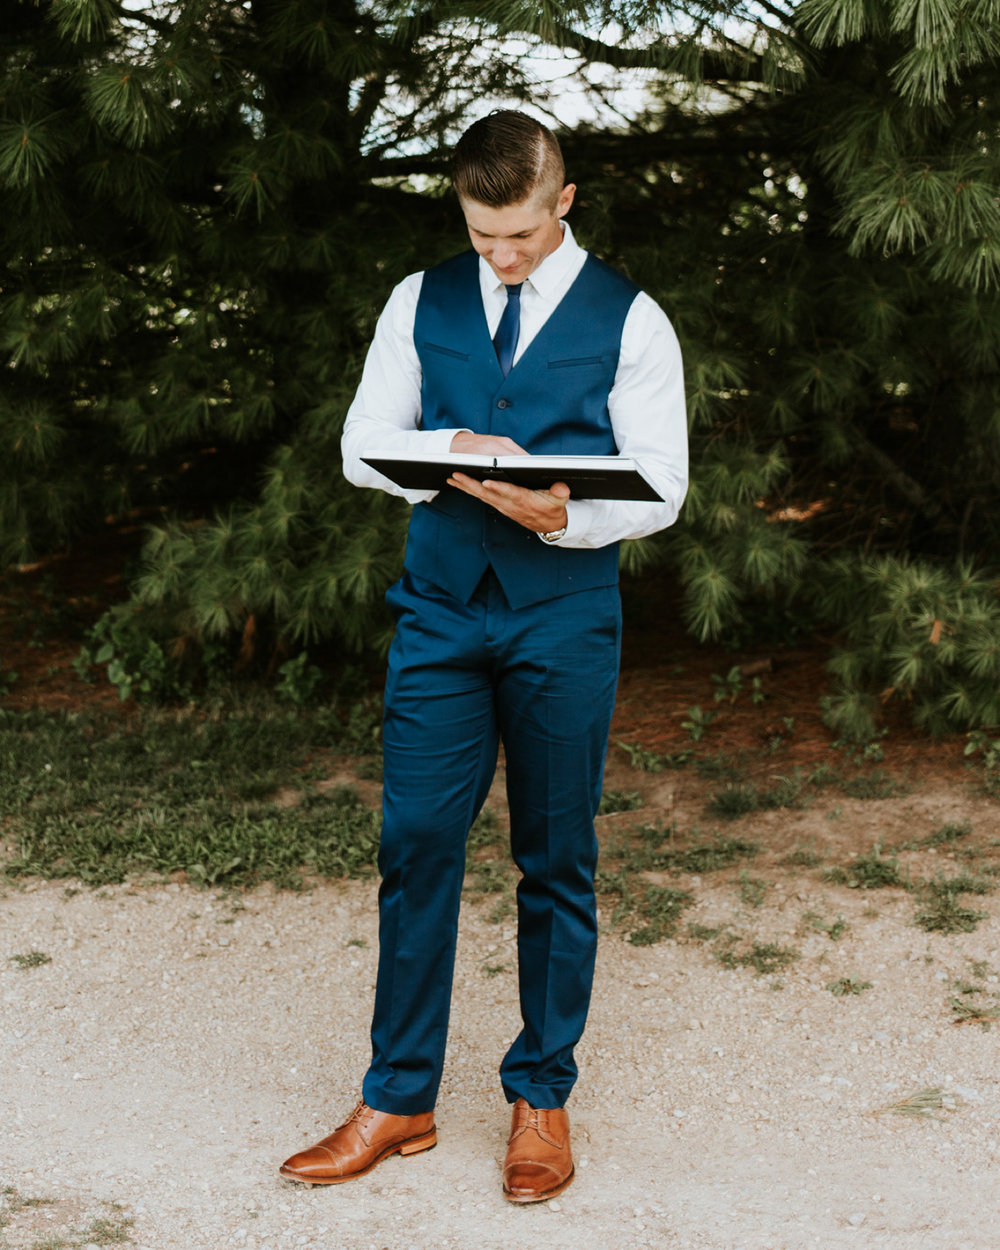 Kayla-Cody-Midwest-Summer-Backyard-Wedding-13.jpg